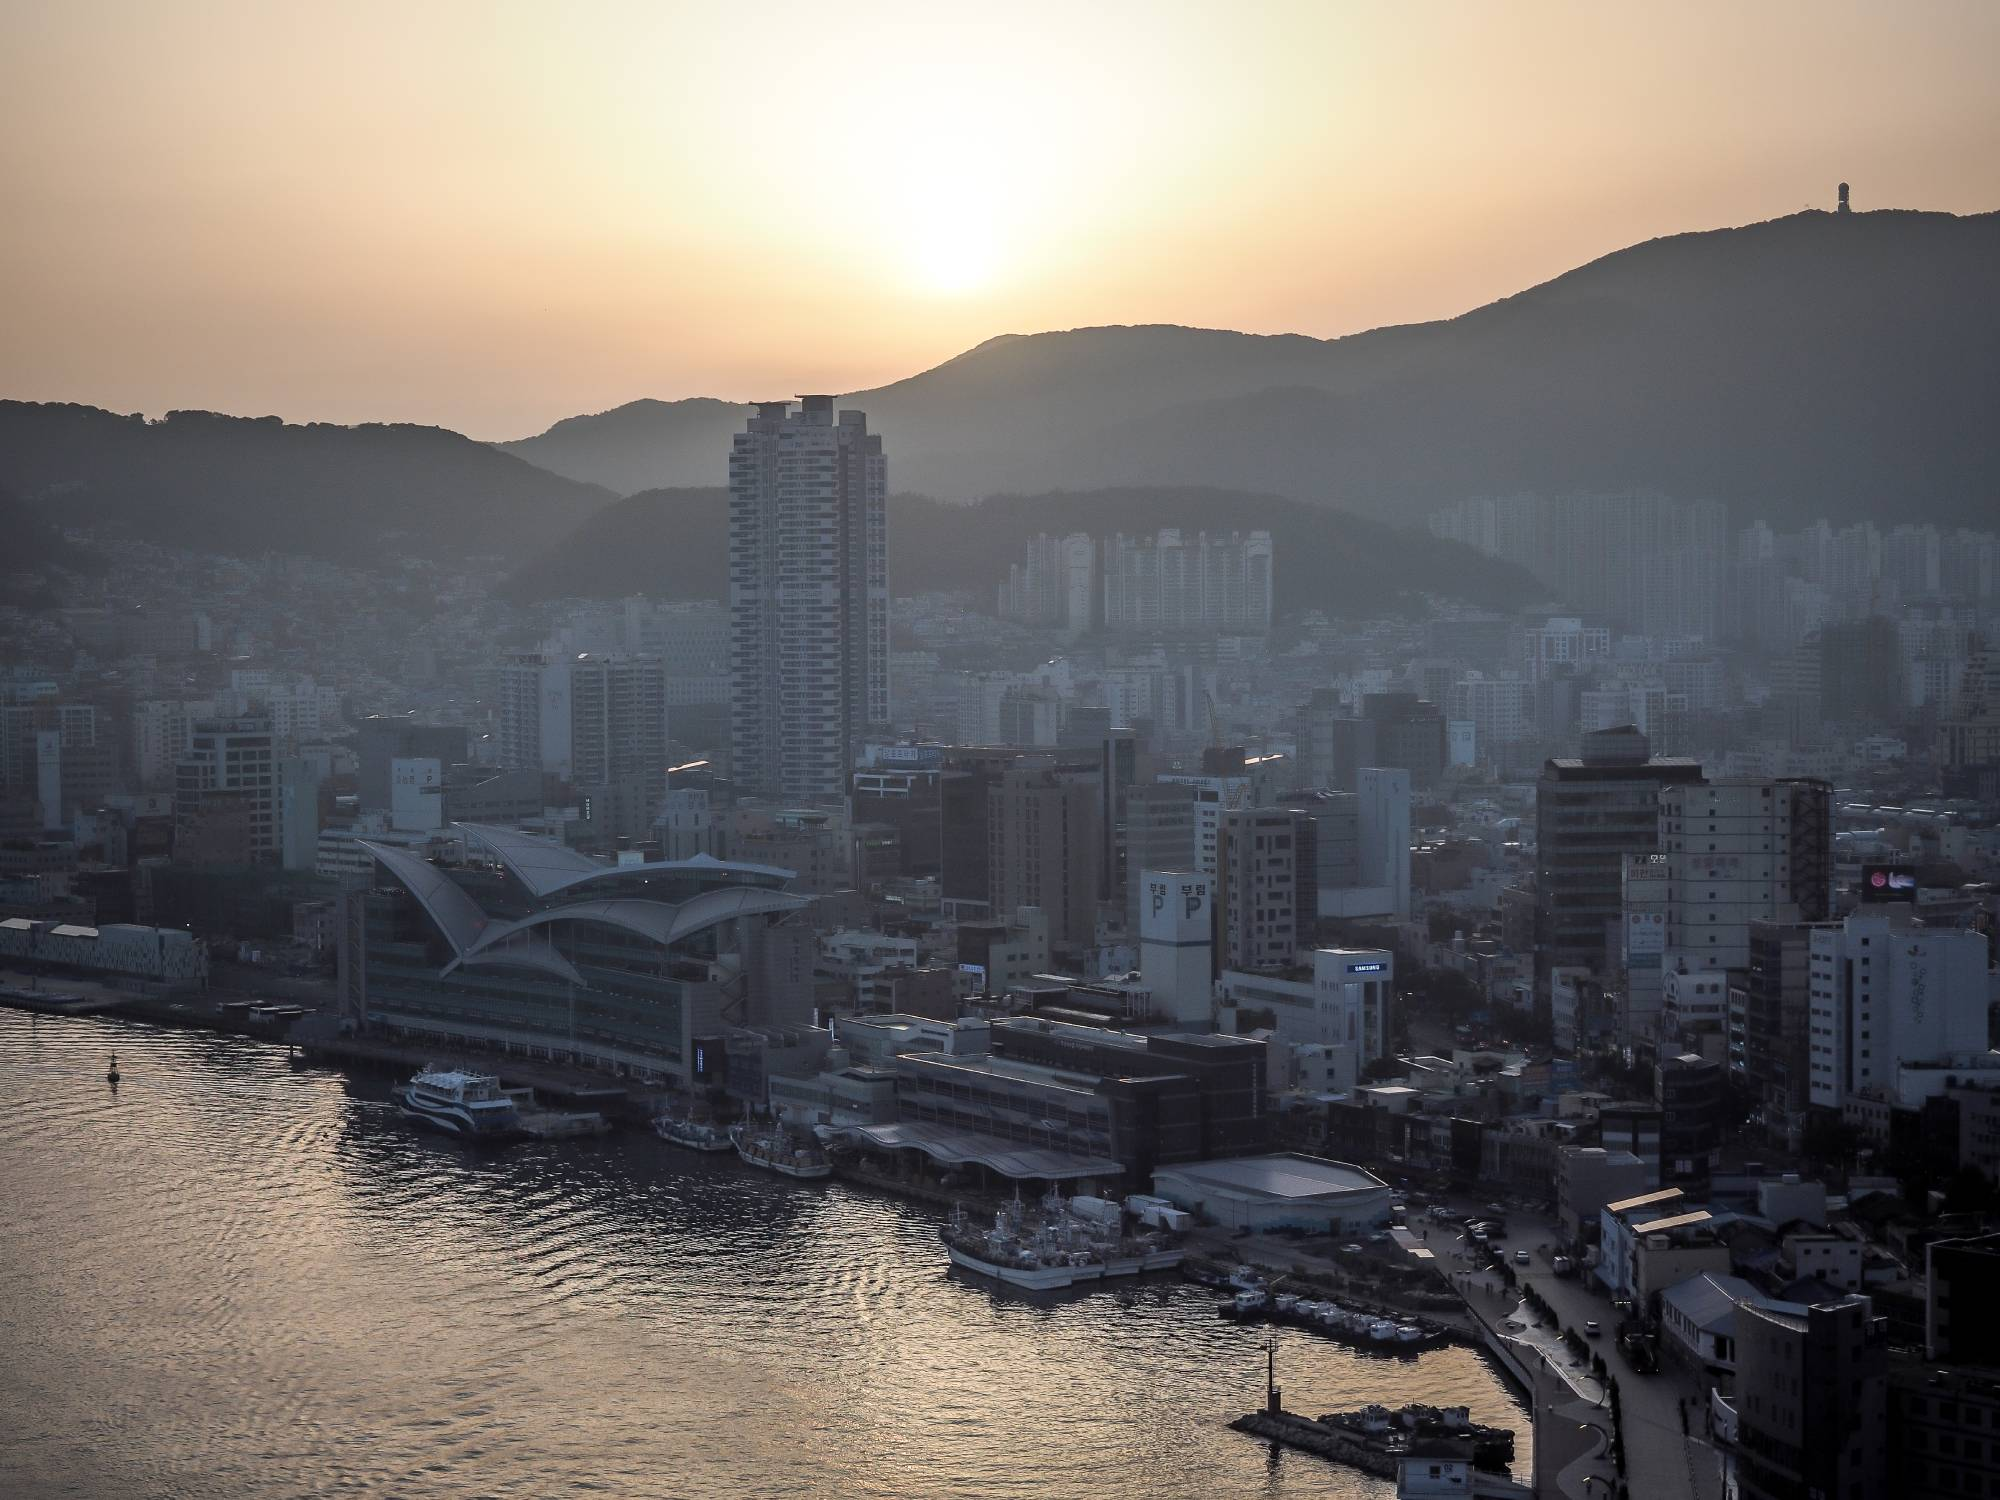 Sunset over Busan, viewed from the La Valse bar patio